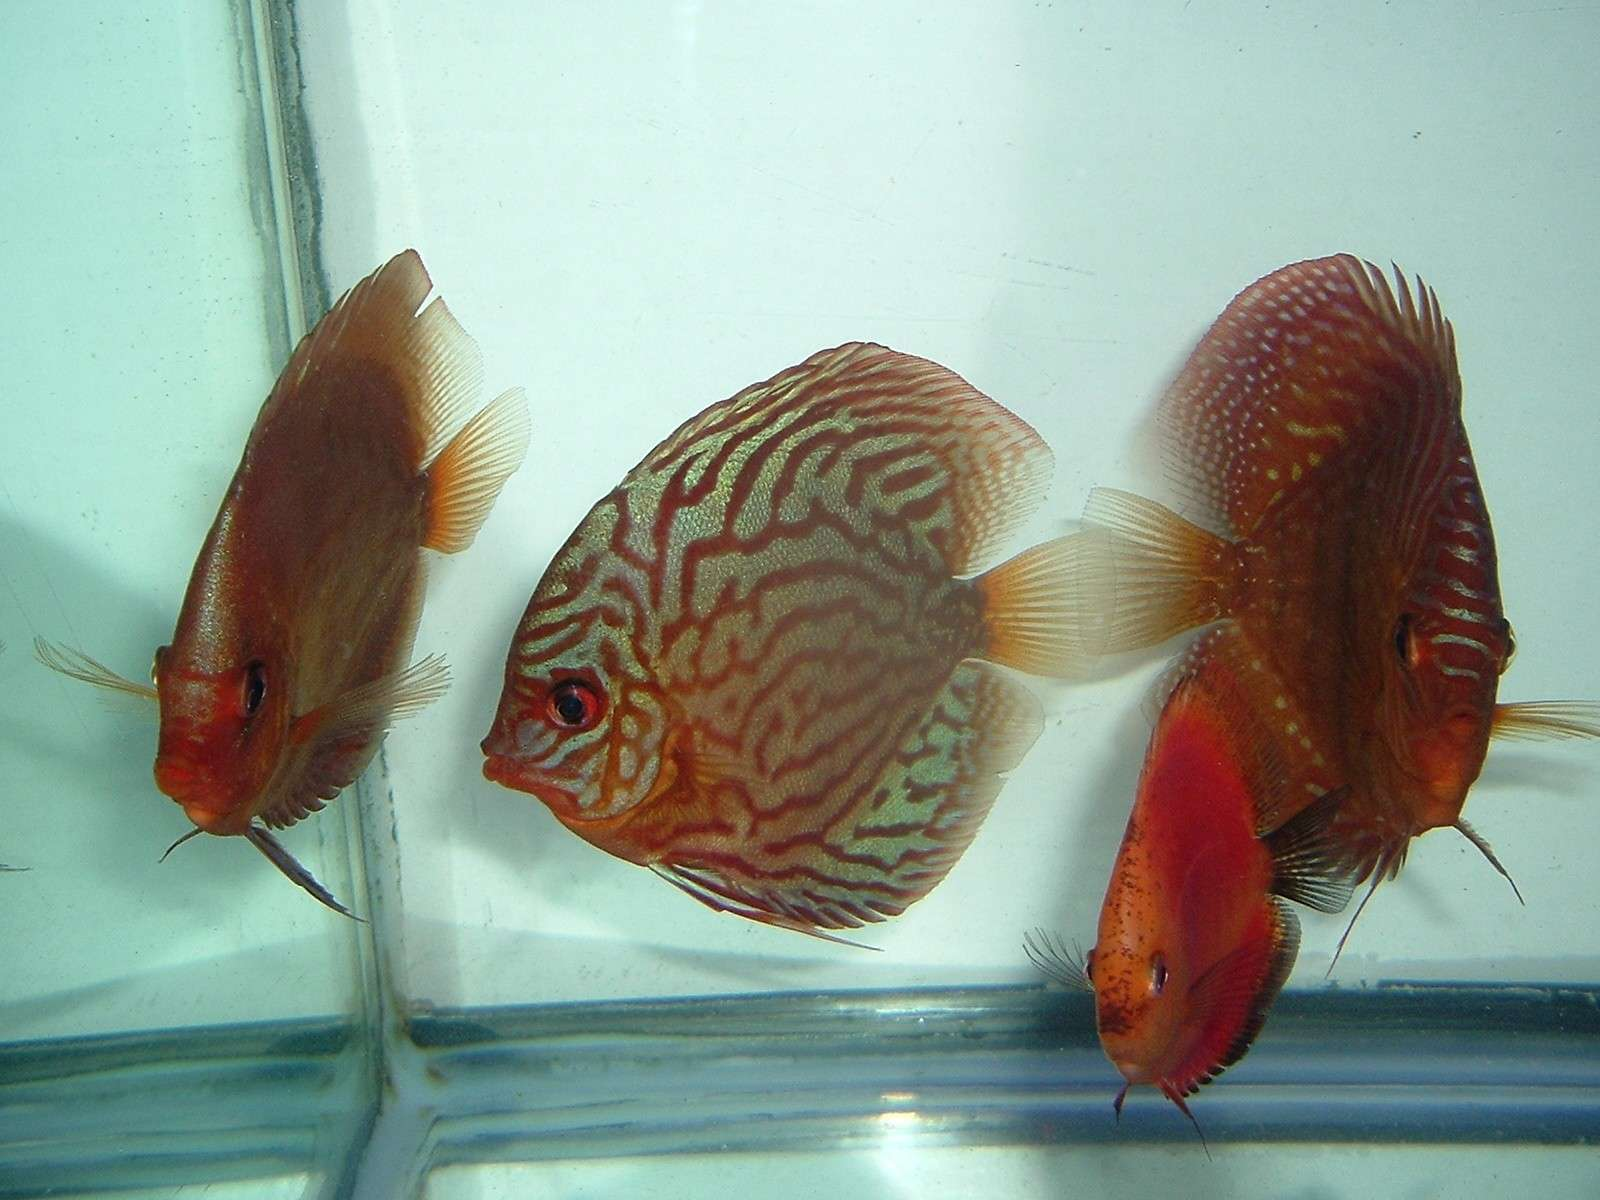 My Discus Pics!! (everything for sale now!!) 410